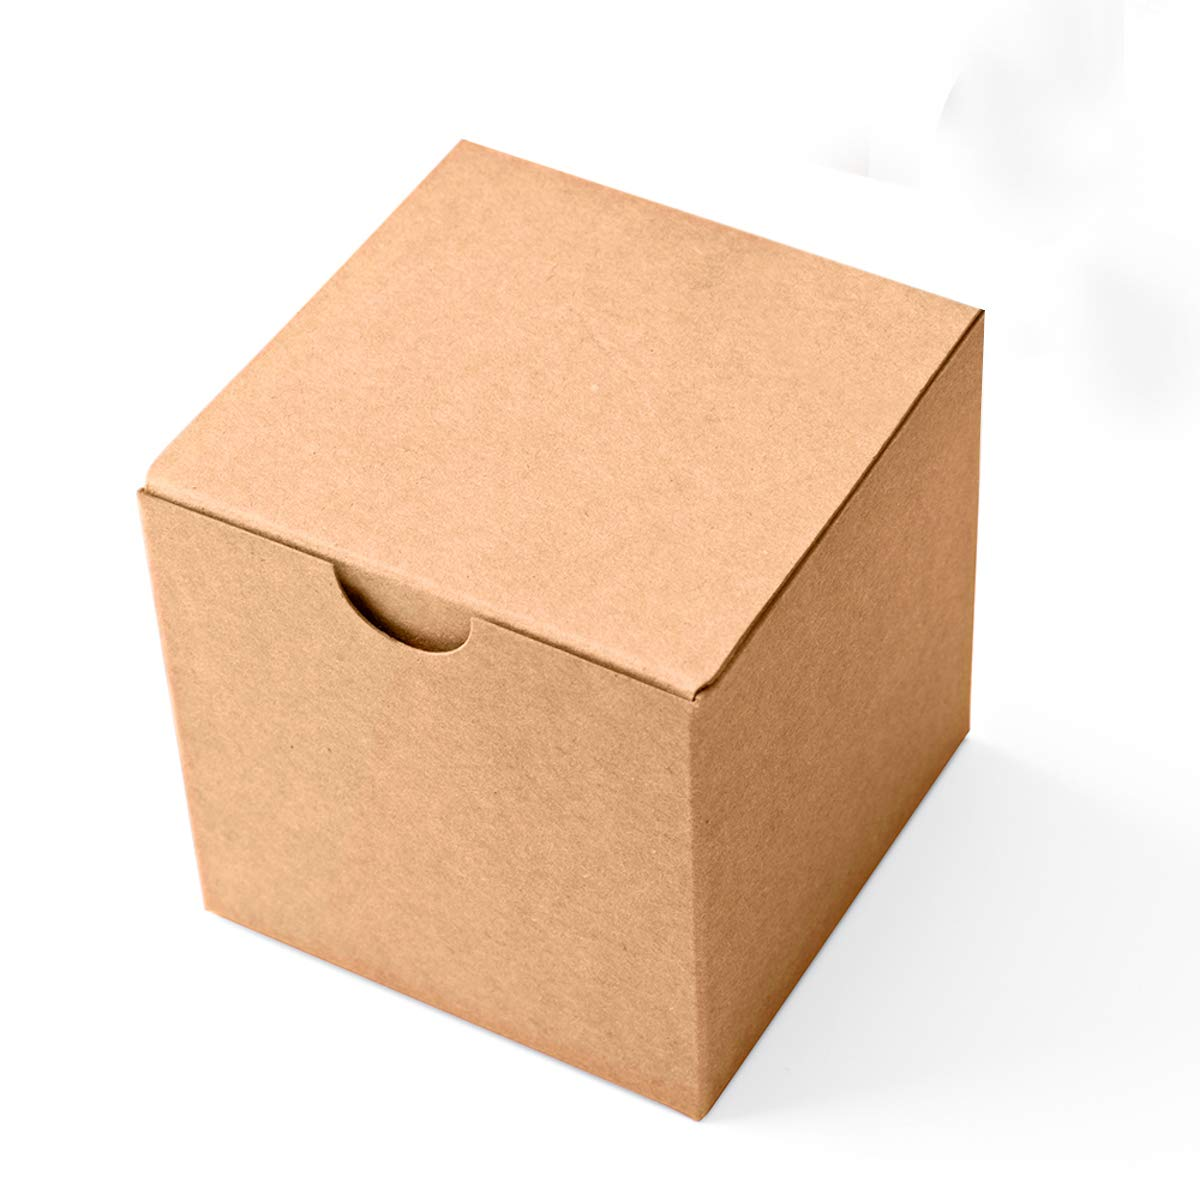 MESHA Kraft Boxes 50 Pack 3 x 3 x 3 Inches, Brown Paper Gift Boxes with Lids for Gifts, Crafting, Cupcake Boxes 7899664898996